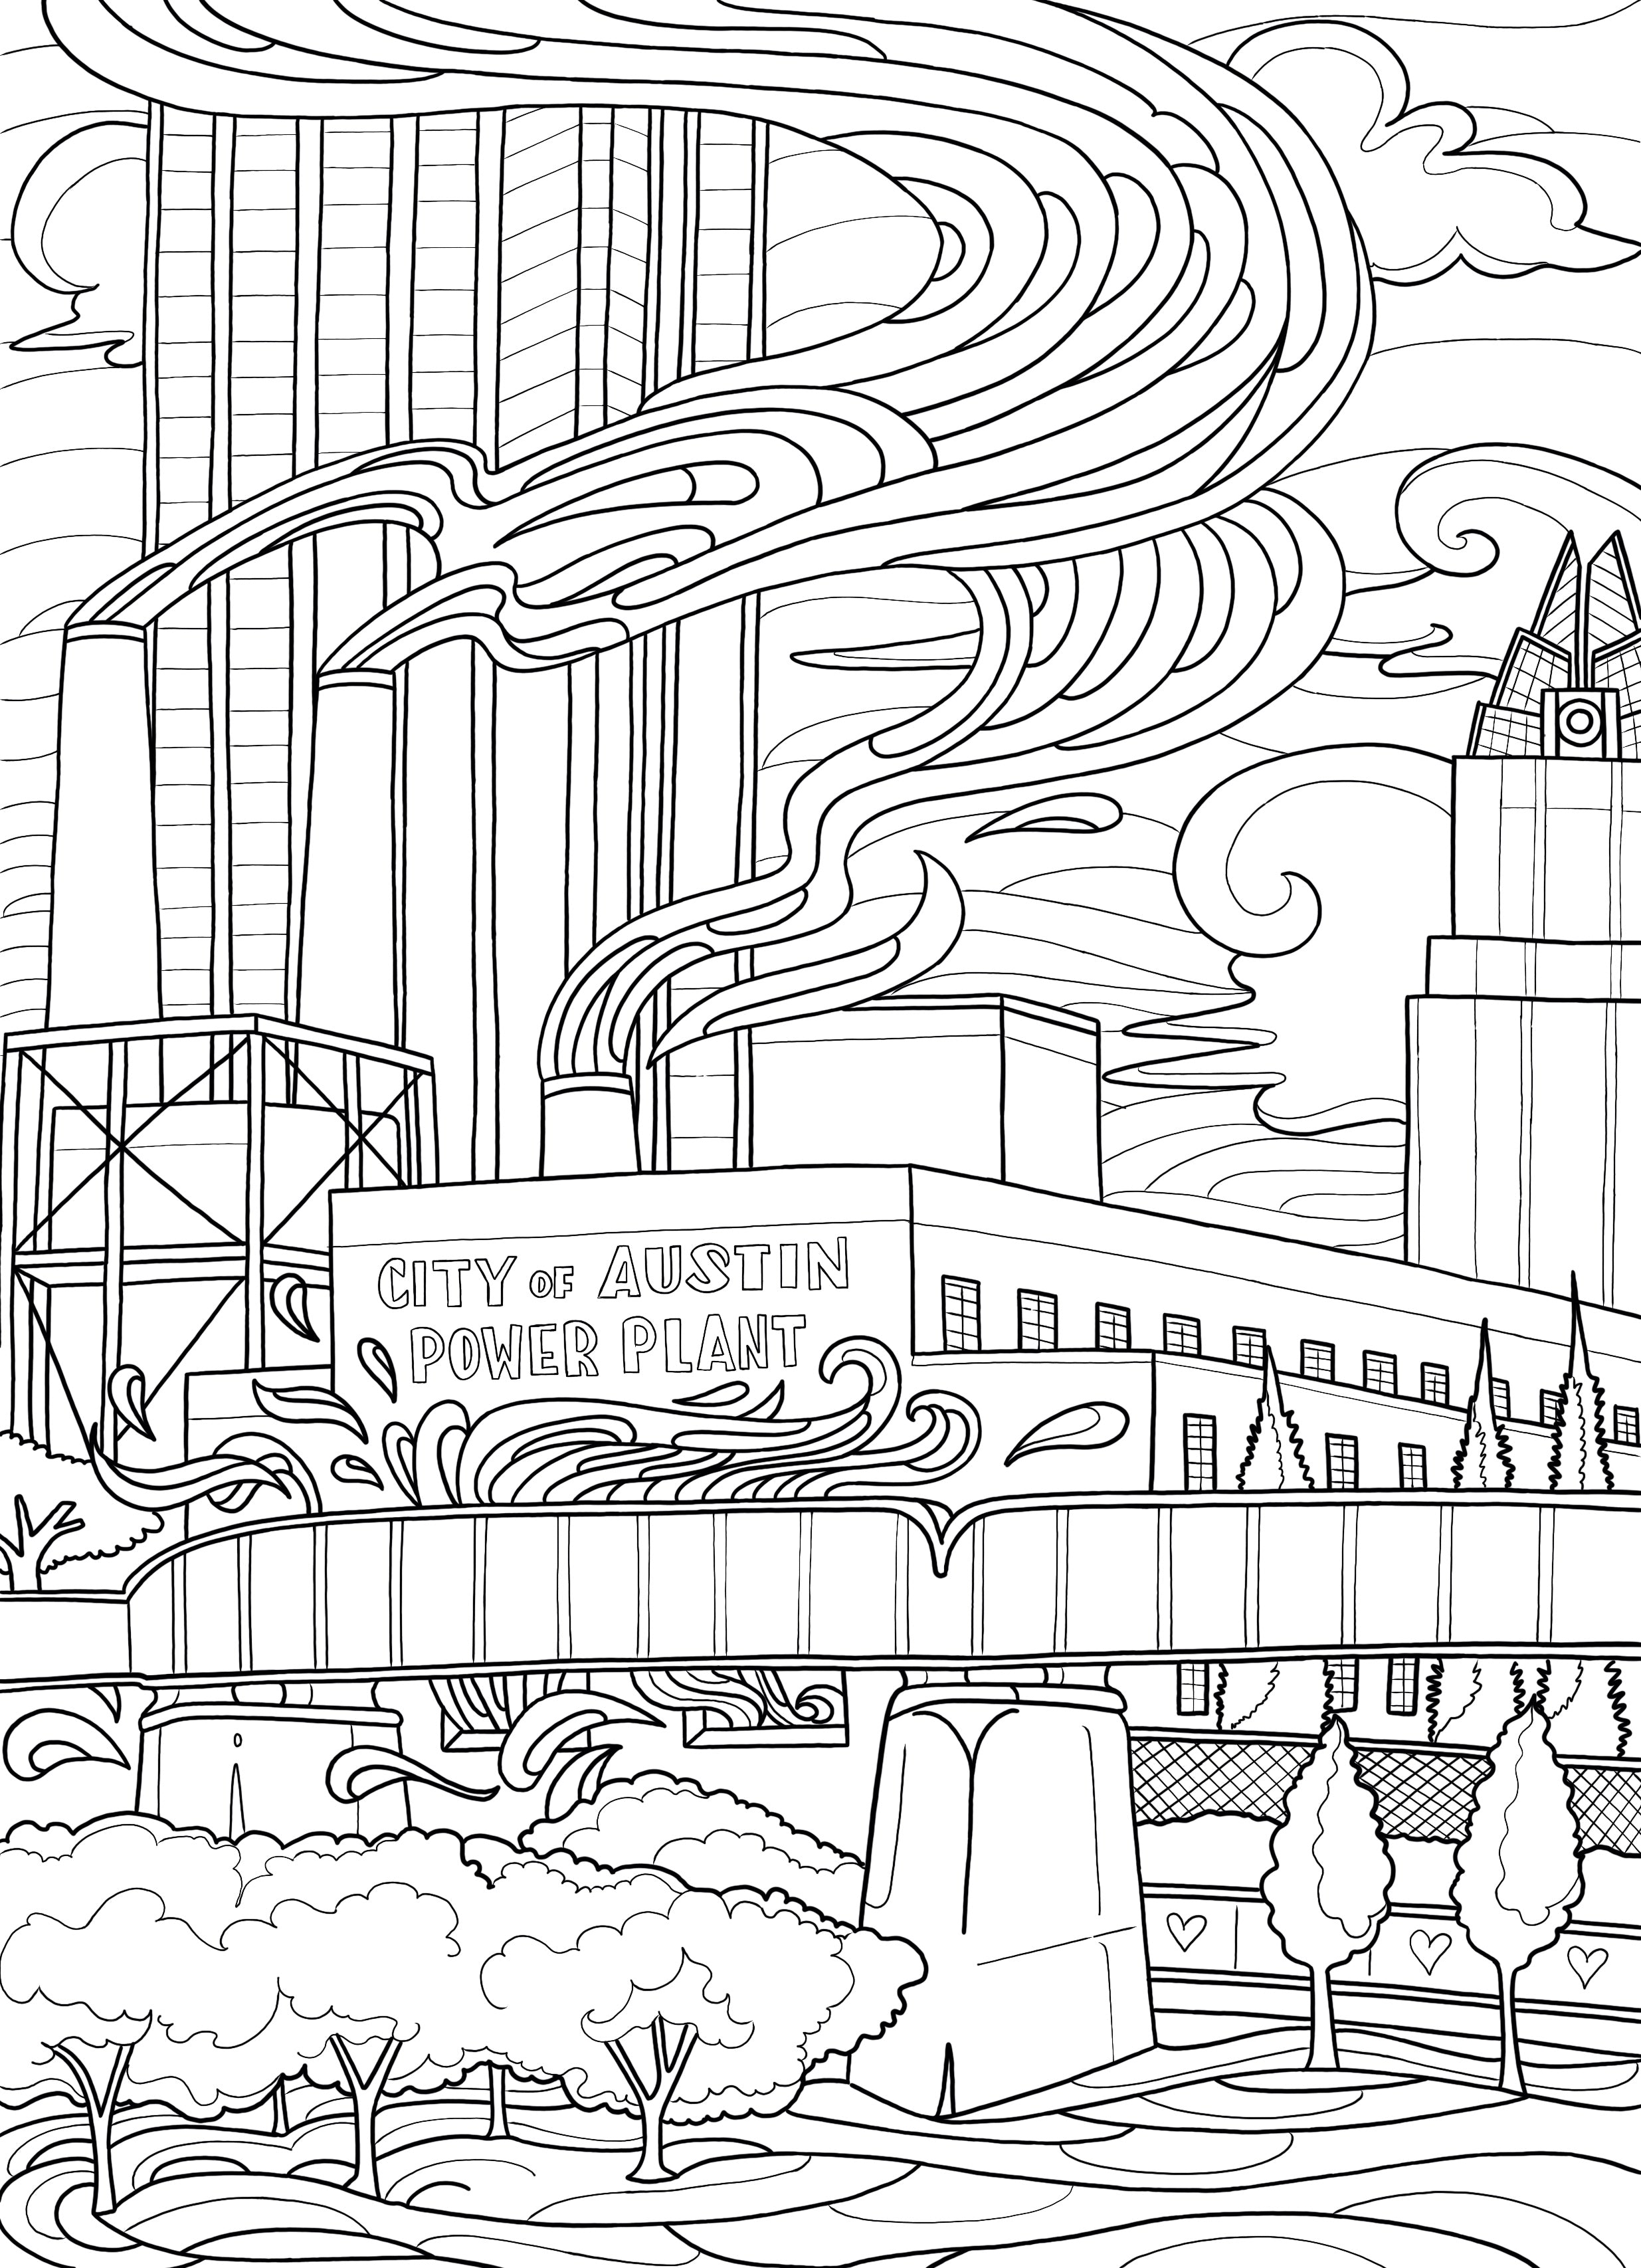 Power Plant Coloring Page - Borrelli Illustrations